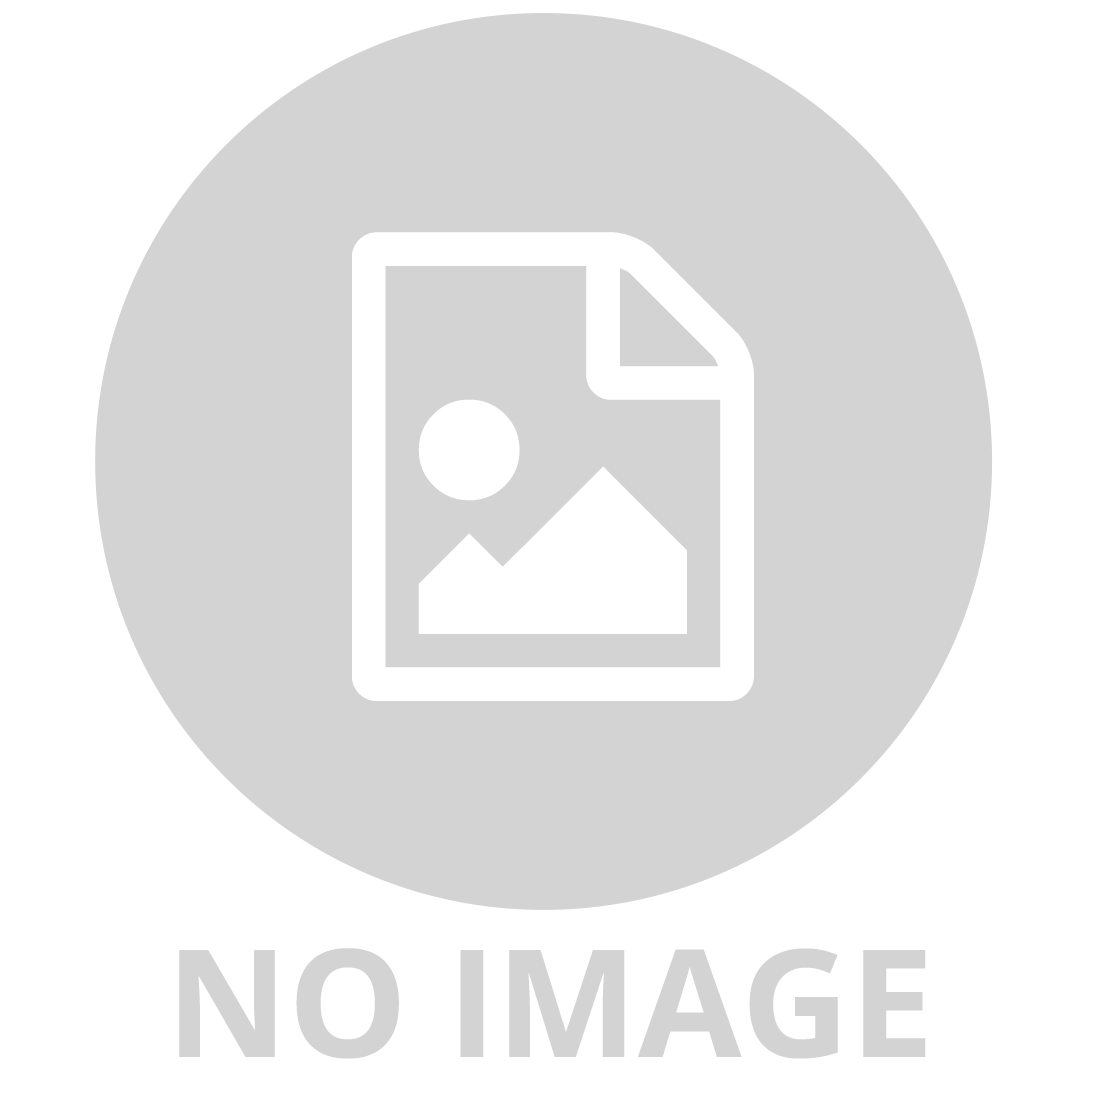 YAMAHA 12 VOLT YXZ 1000 UTV BLUE/WHITE RIDE ON